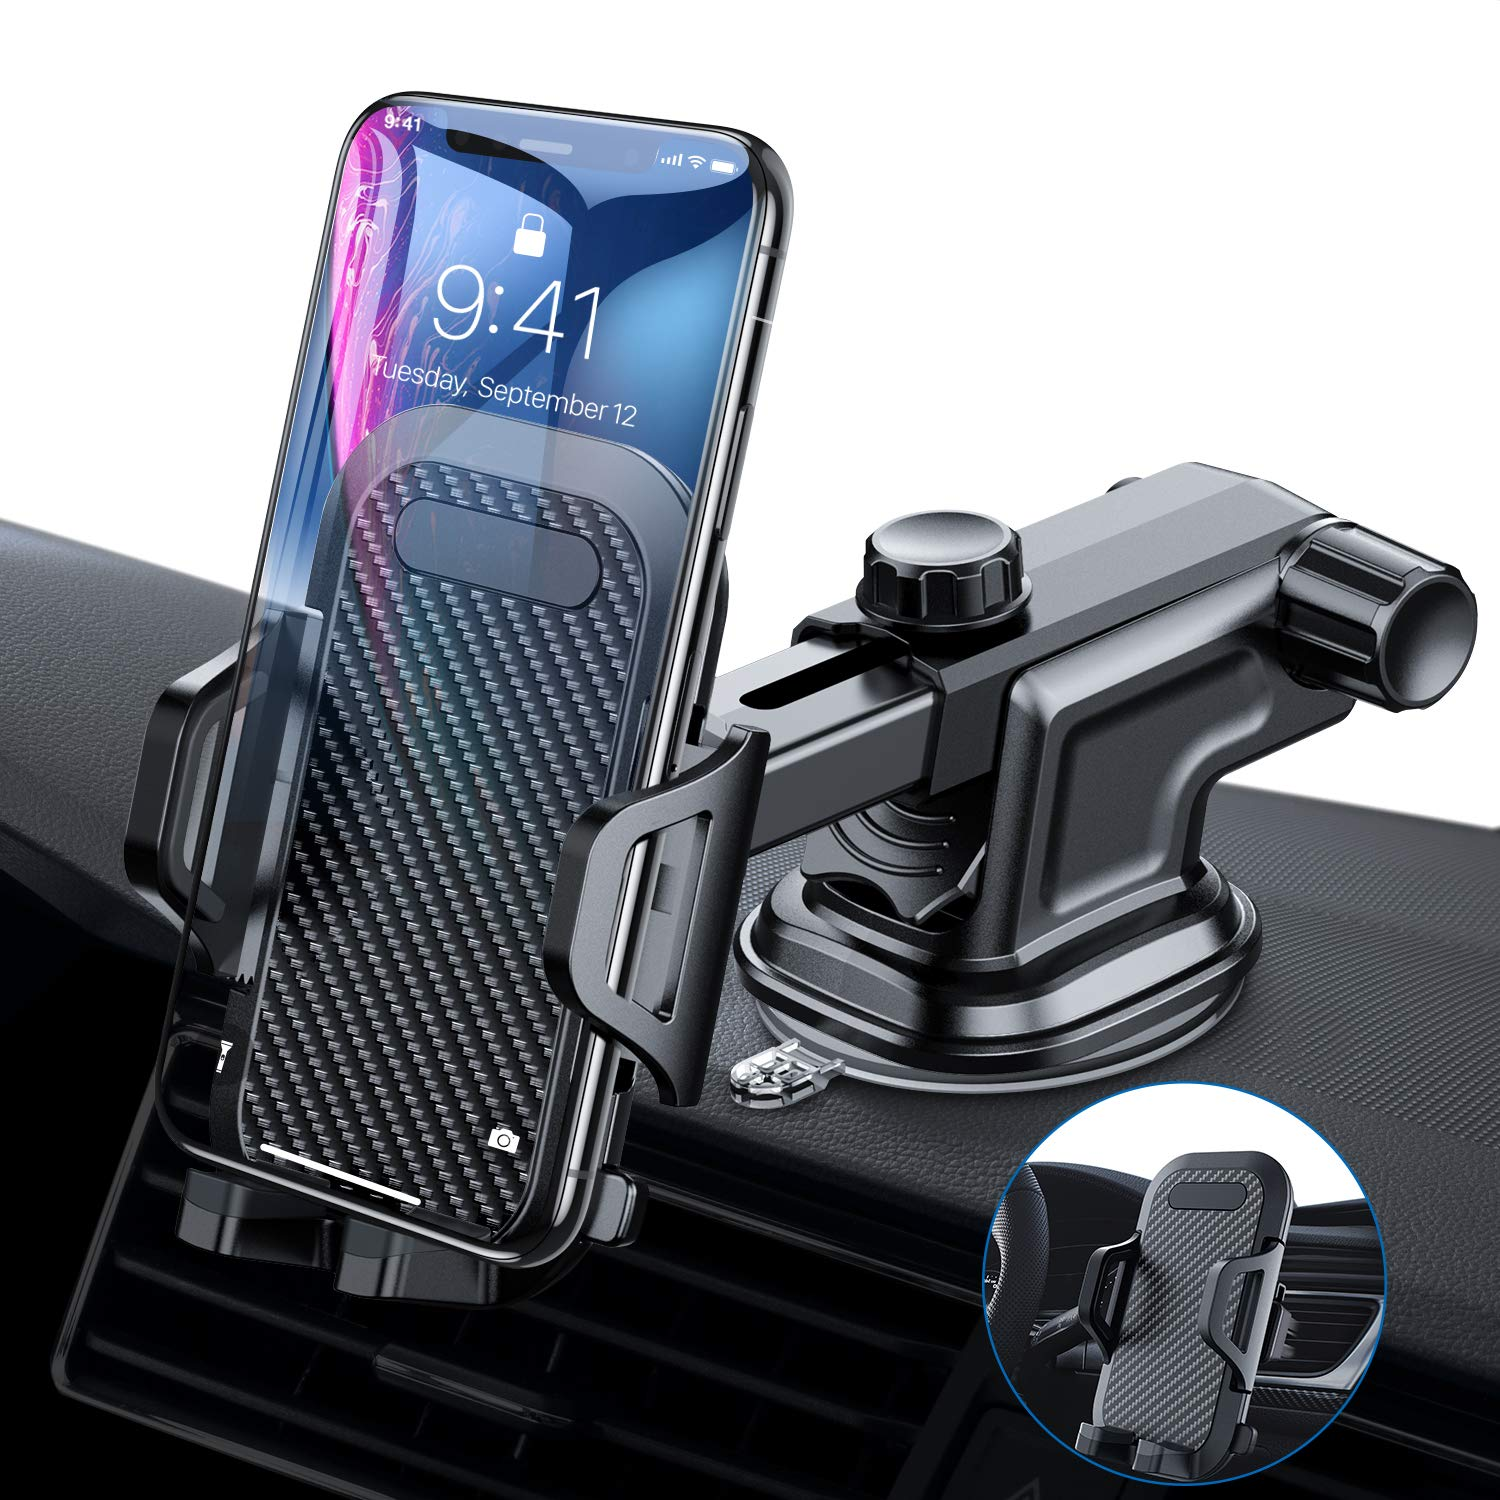 VANMASS Car Phone Mount, Dashboard Windshield Air Vent Cell Phone Holder for Car with Vent Clip & Dashboard Pad, Strong Sticky Suction, One Button Release Car Cradle, Compatible 3.5''-6.5'' Phone & Case